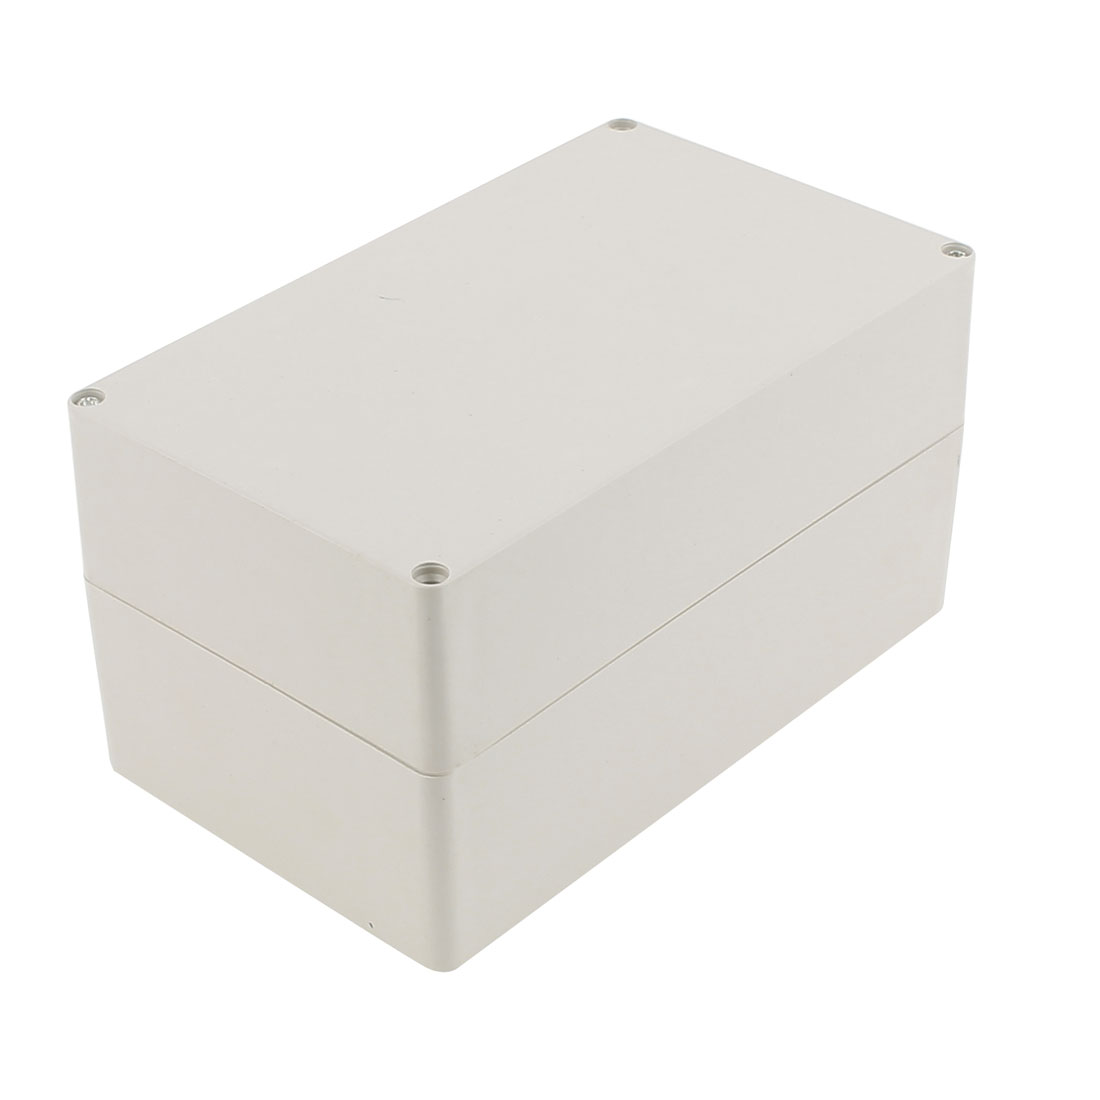 200 x 120 x 108mm Dustproof IP65 Junction Box Terminal Connecting Box Enclosure